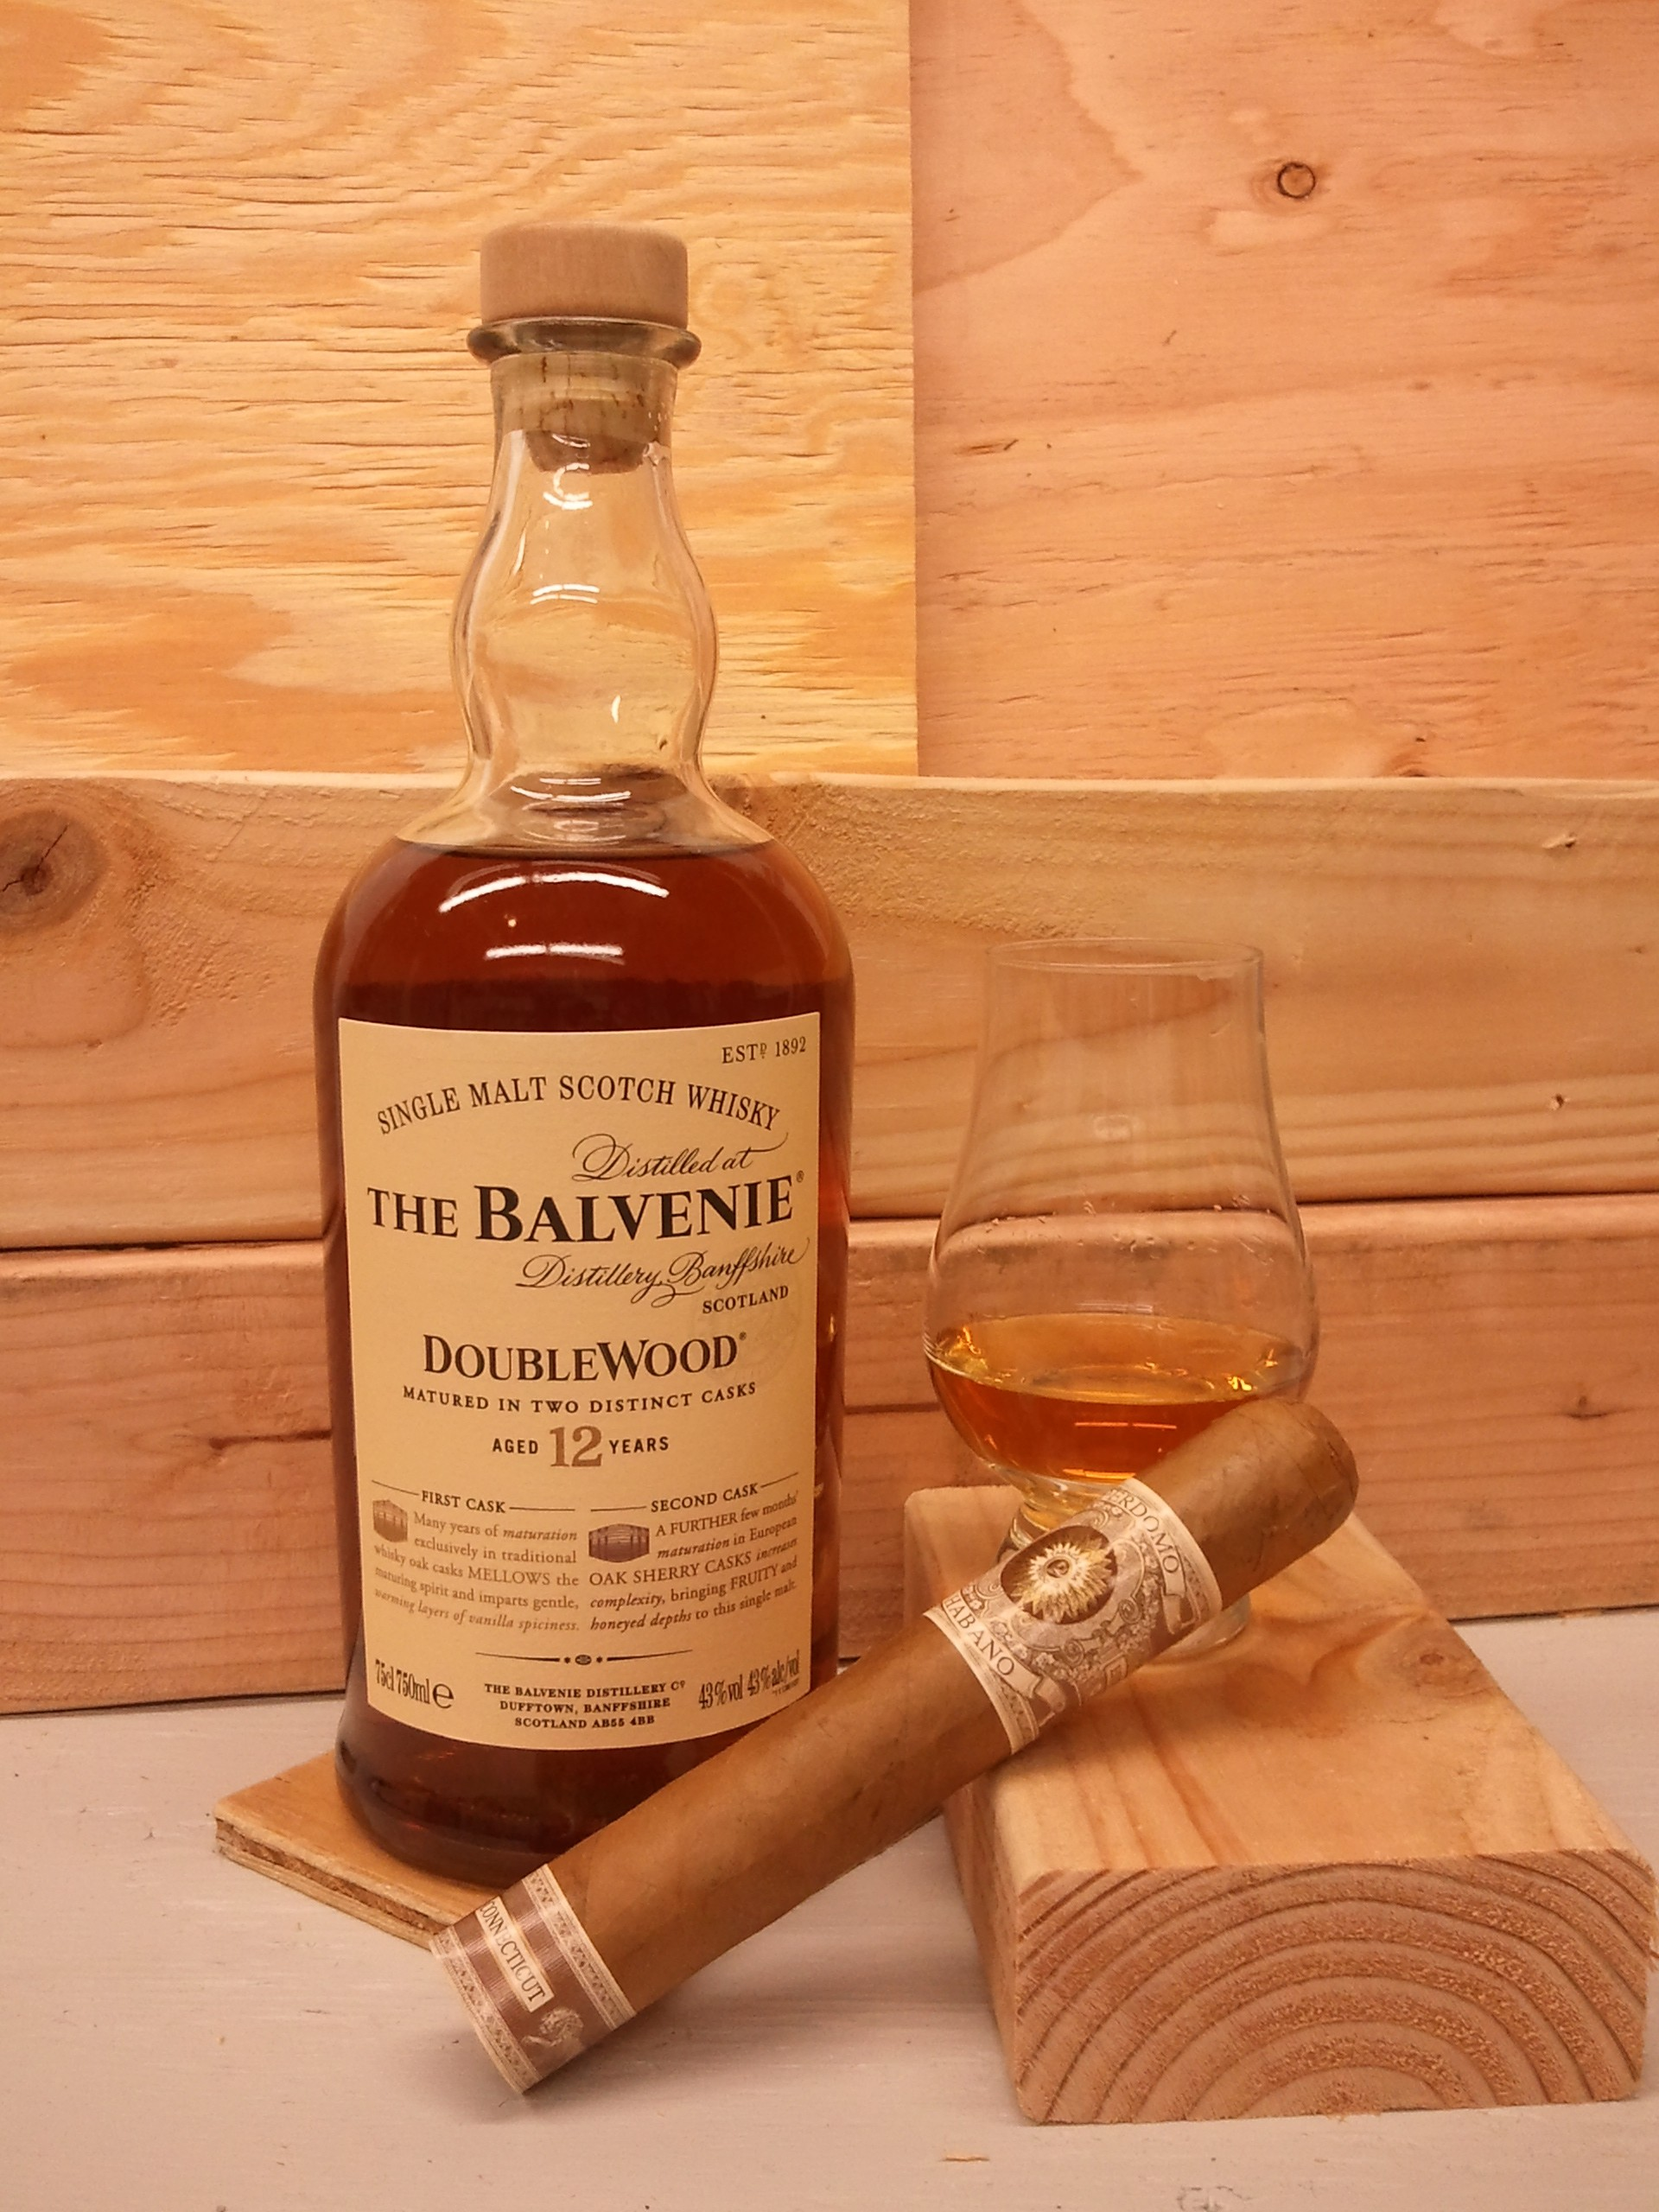 Balvenie 12 year Double Wood and Perdomo Habano Connecticut